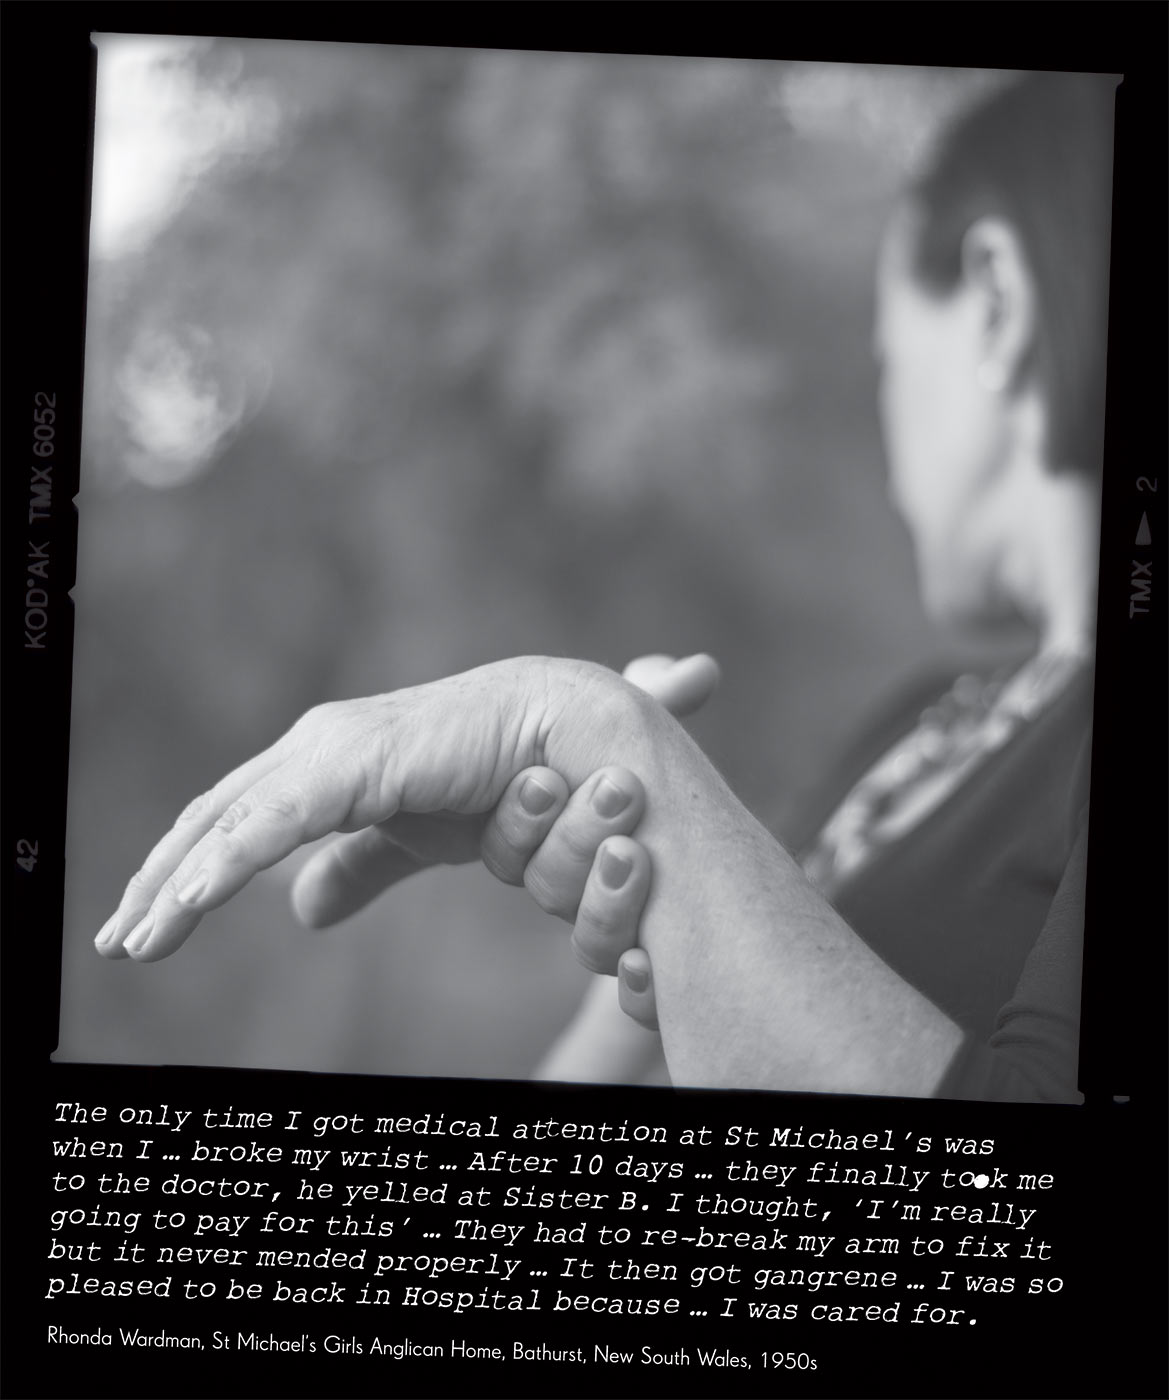 Black and white photo of a women supporting the underside of her left wrist with her right hand. Both hands are elevated and the focal point of the photo. The photo caption reads 'The only time I got medical attention at St Michael's was when I ... broke my wrist ... After 10 days ... they finally took me to the doctor, he yelled at Sister B. I thought, 'I'm really going to pay for this' ... They had to re-break my arm to fix it but it never mended properly ... It then got gangrene ... I was so pleased to be back in Hospital because ... I was cared for.' attributed to 'Rhonda Wardman, St Michael's Girls Anglican Home, Bathurst, New South Wales, 1950s'. - click to view larger image